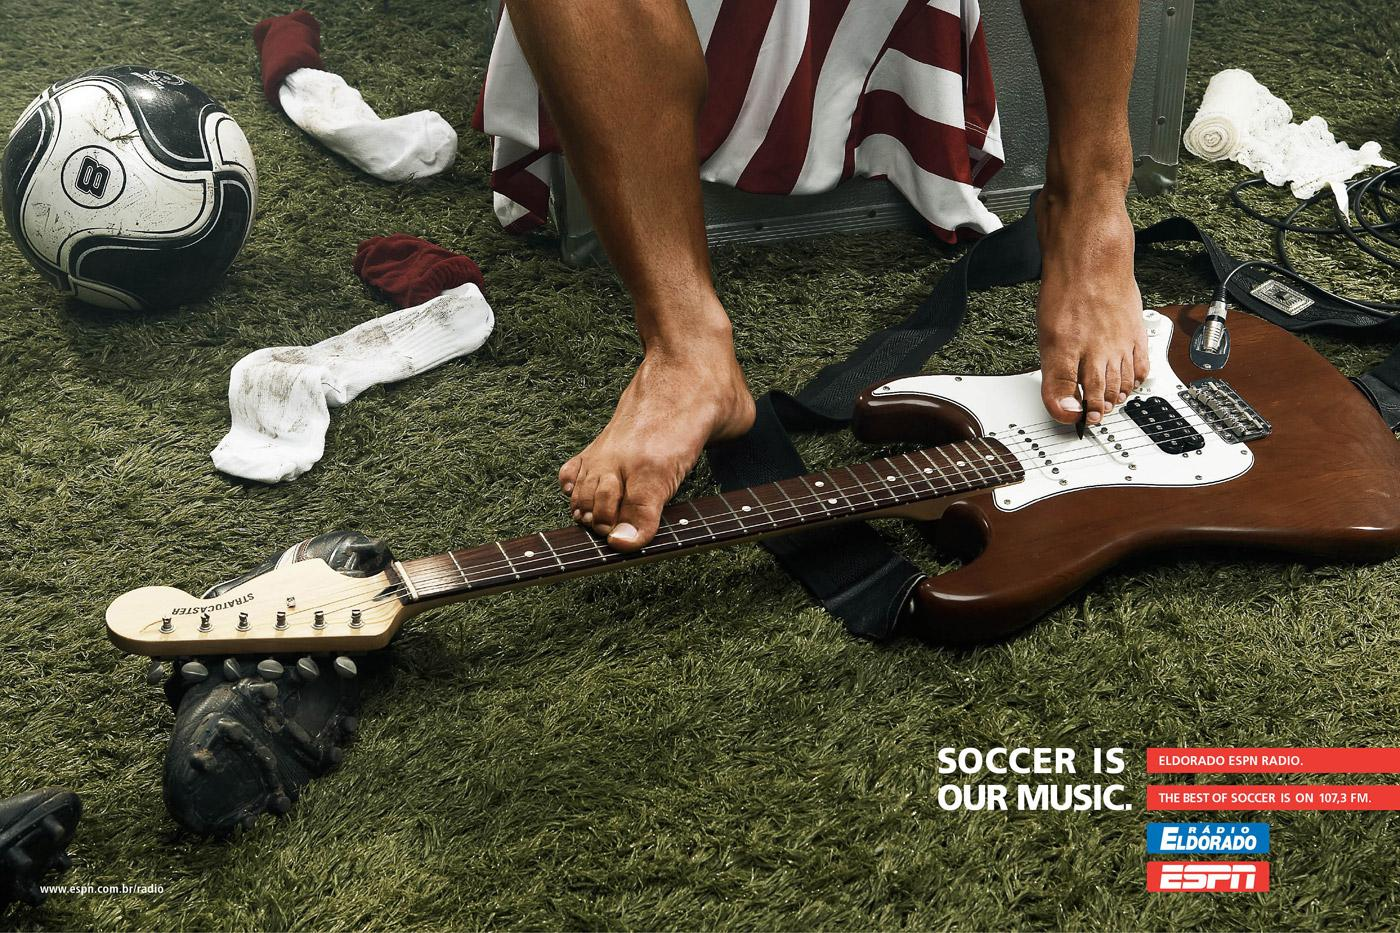 ESPN Print Ad -  Soccer is our music, 1